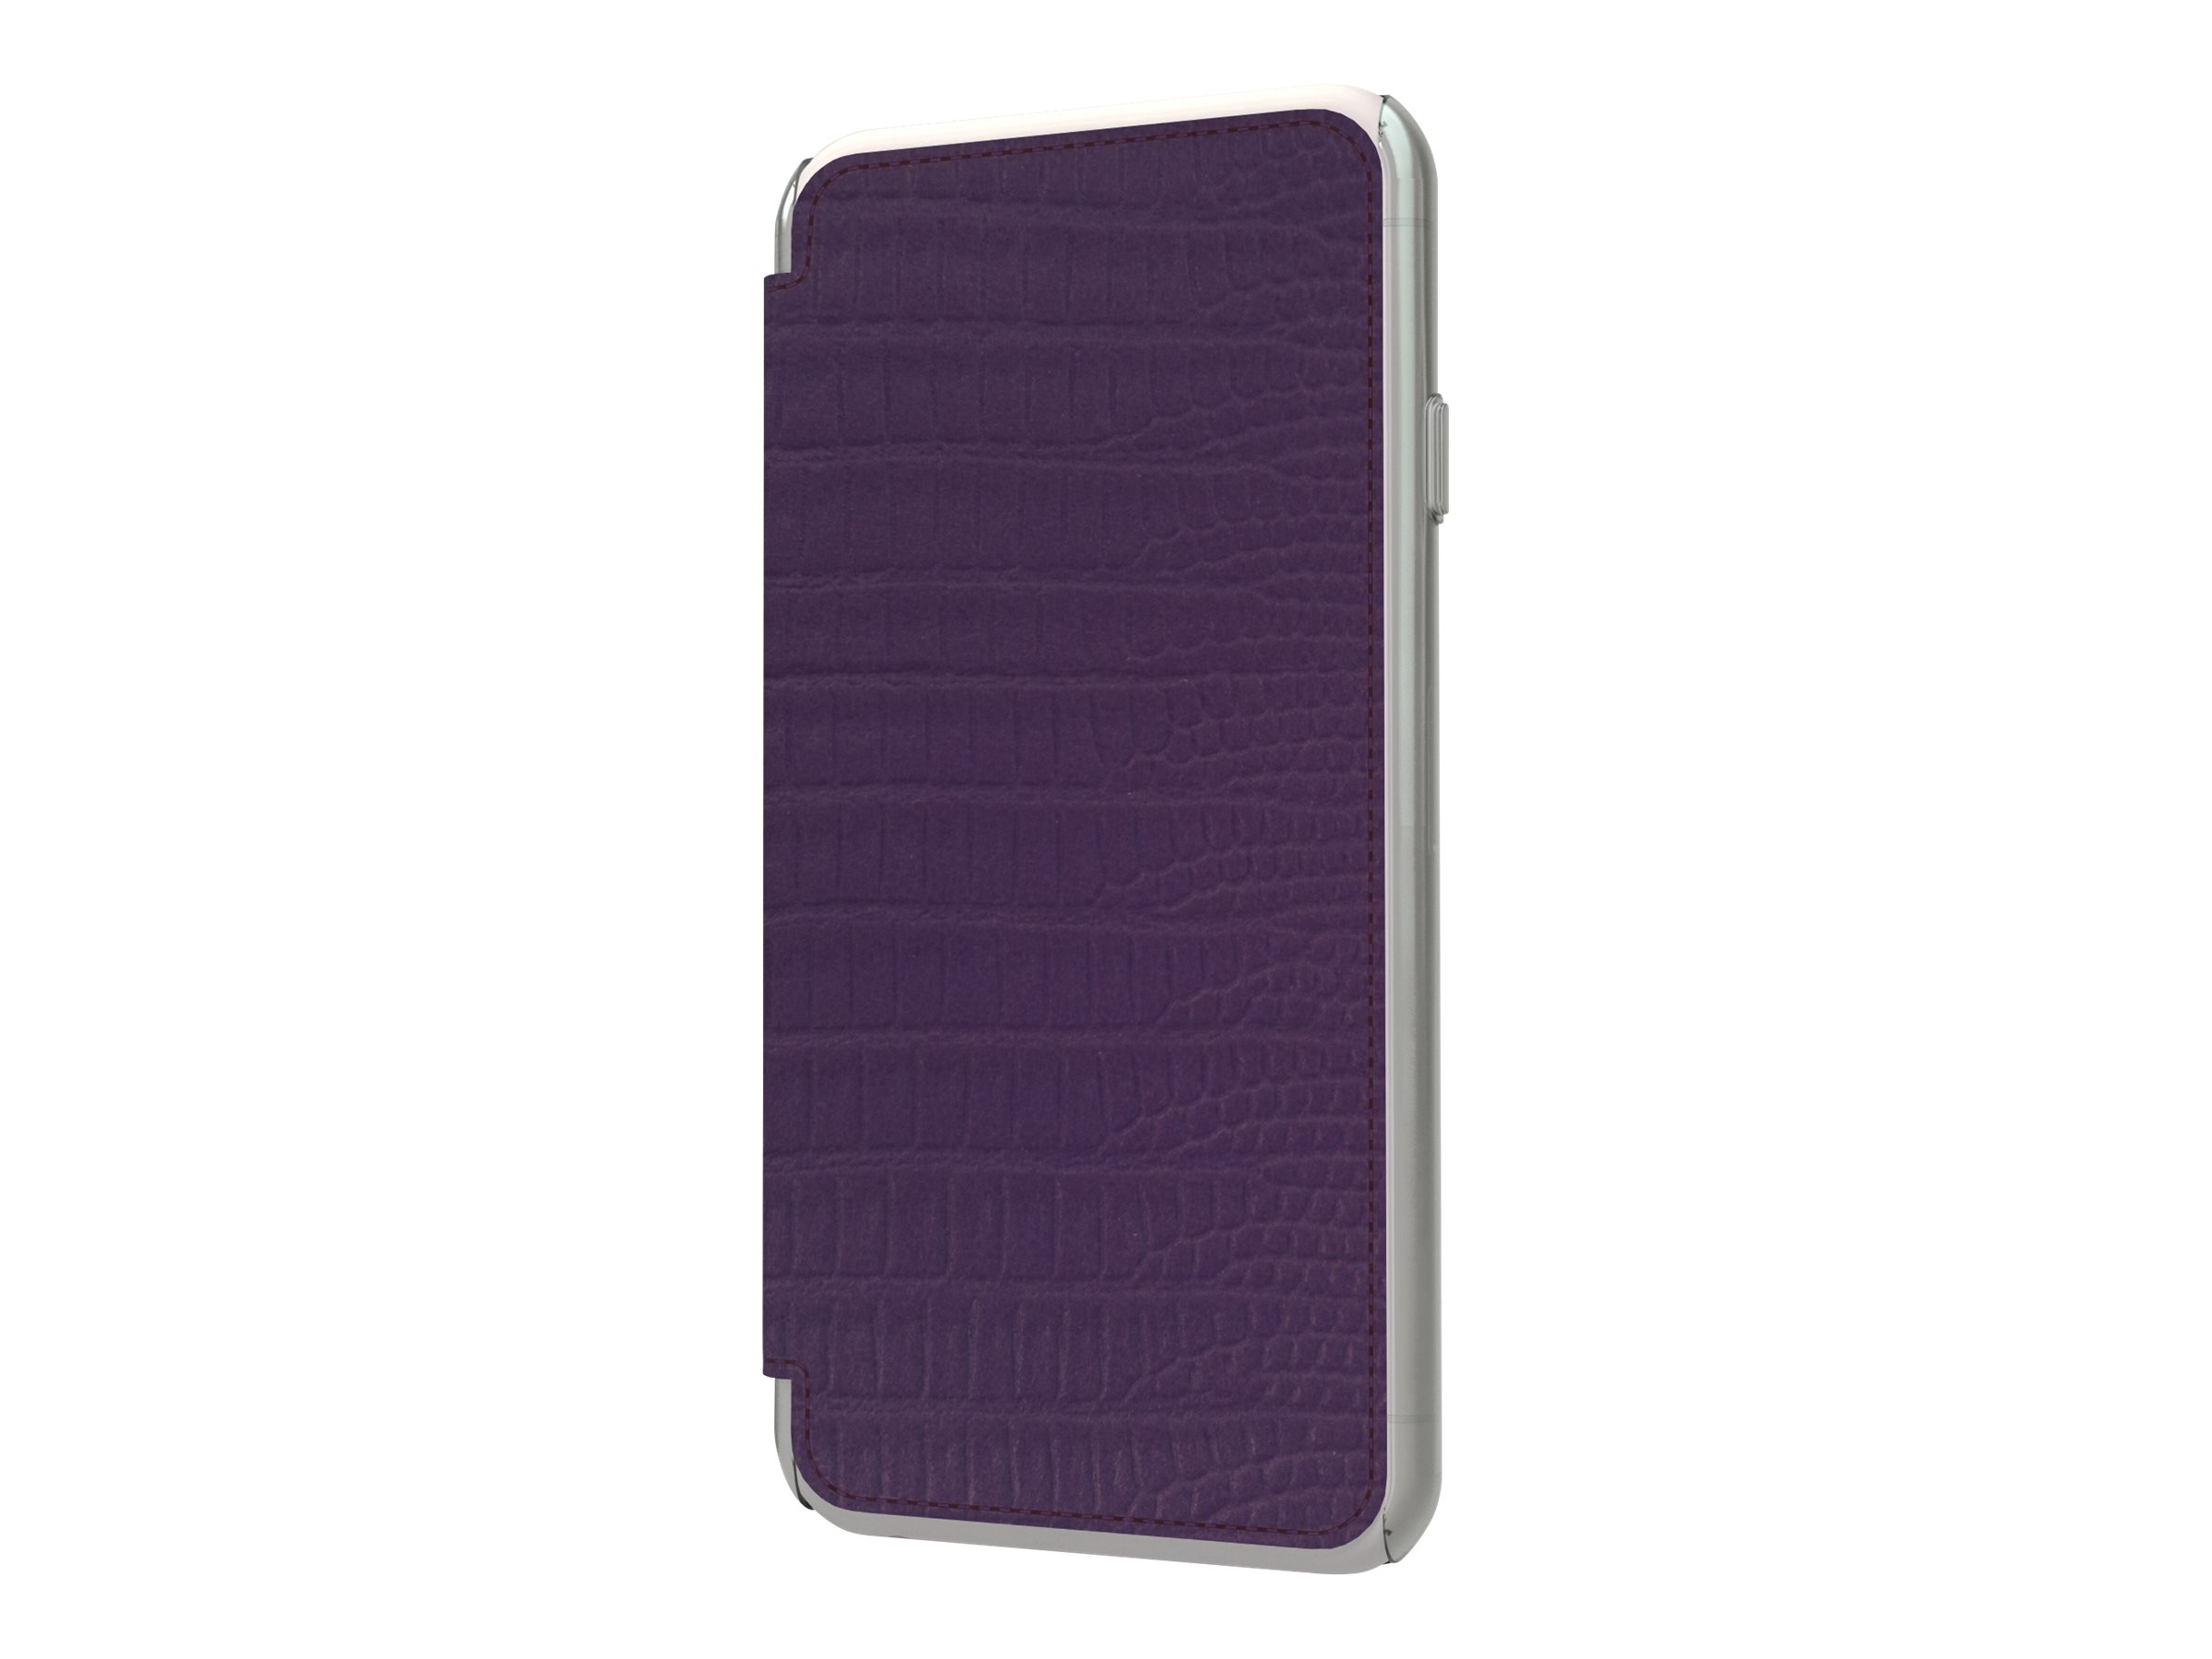 Muvit Made in Paris Crystal Folio - Protection à rabat pour iPhone 6 - violet lézard